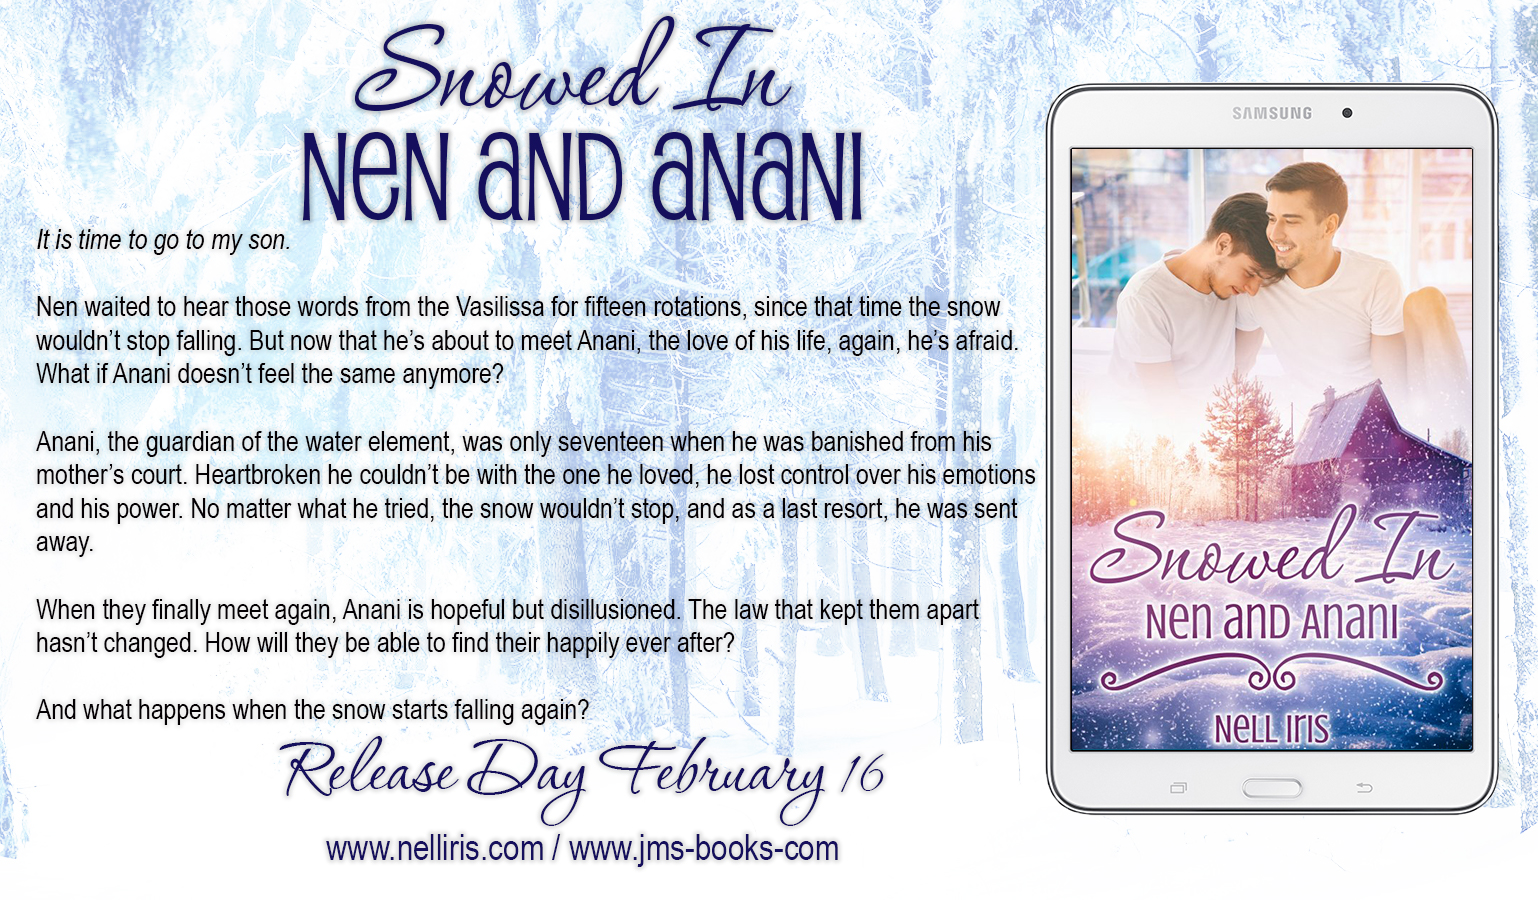 snowed in blurb releaseday 2